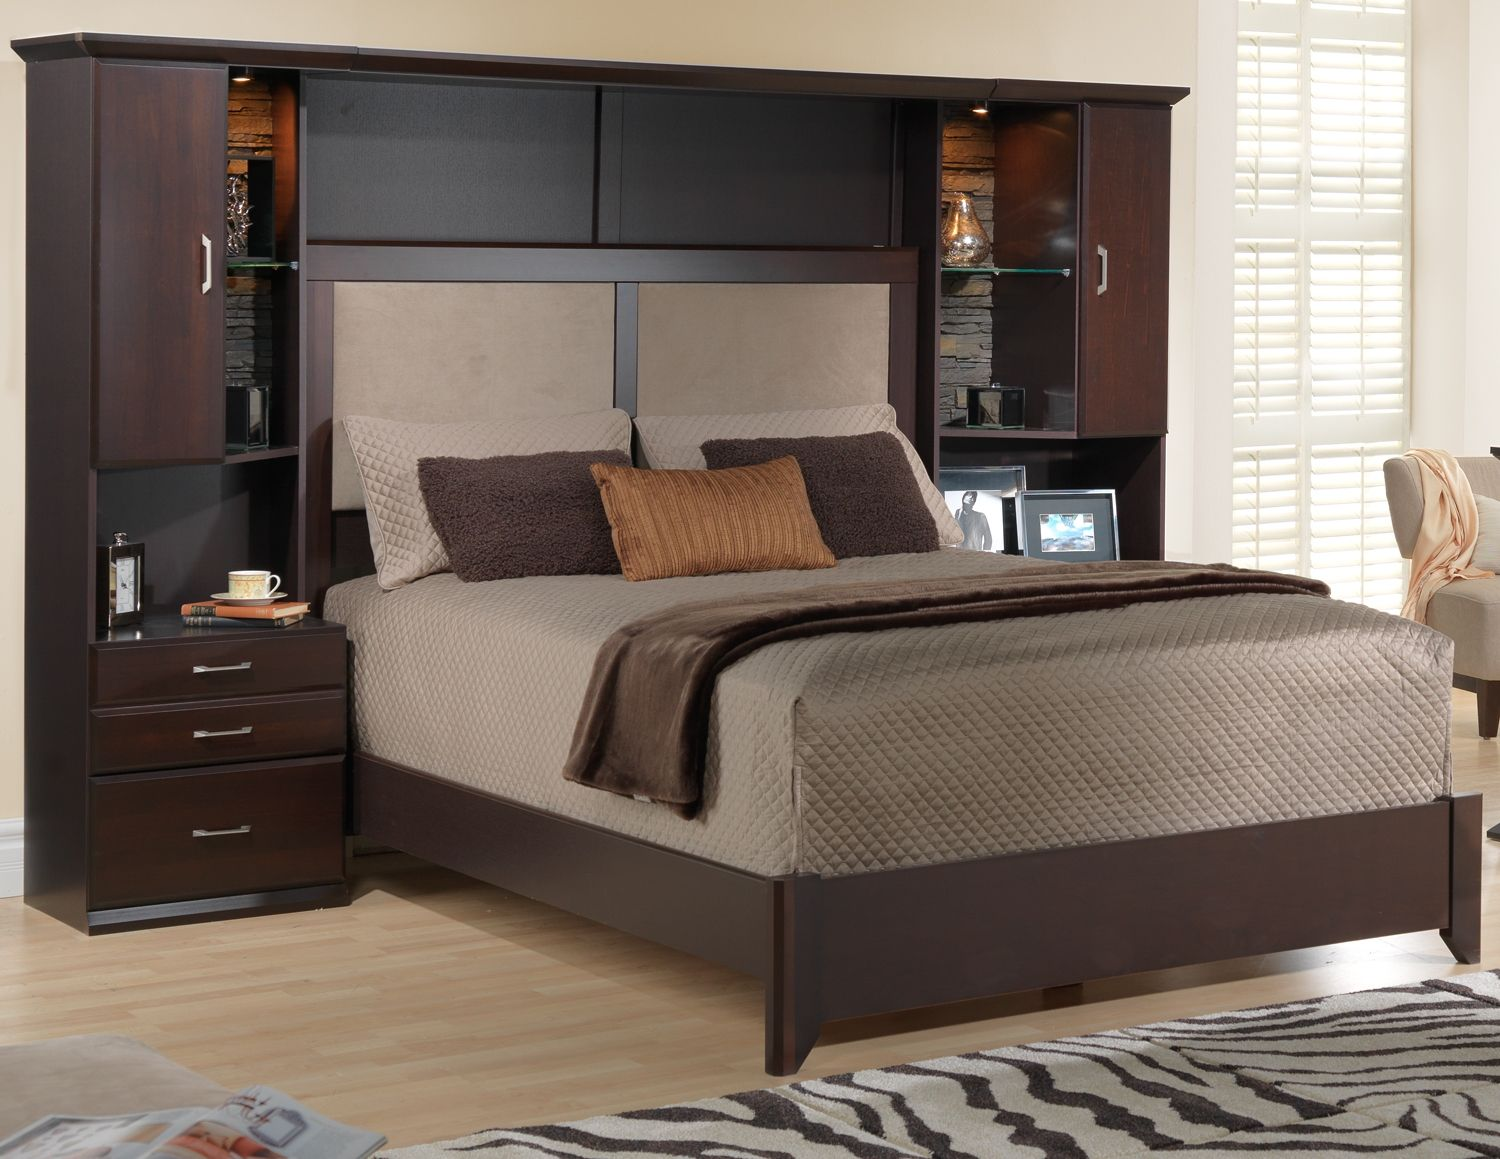 Sherwood Bedroom 6 Pc King Wall Bed Package Leon S Wall Bed Remodel Bedroom Bed Wall